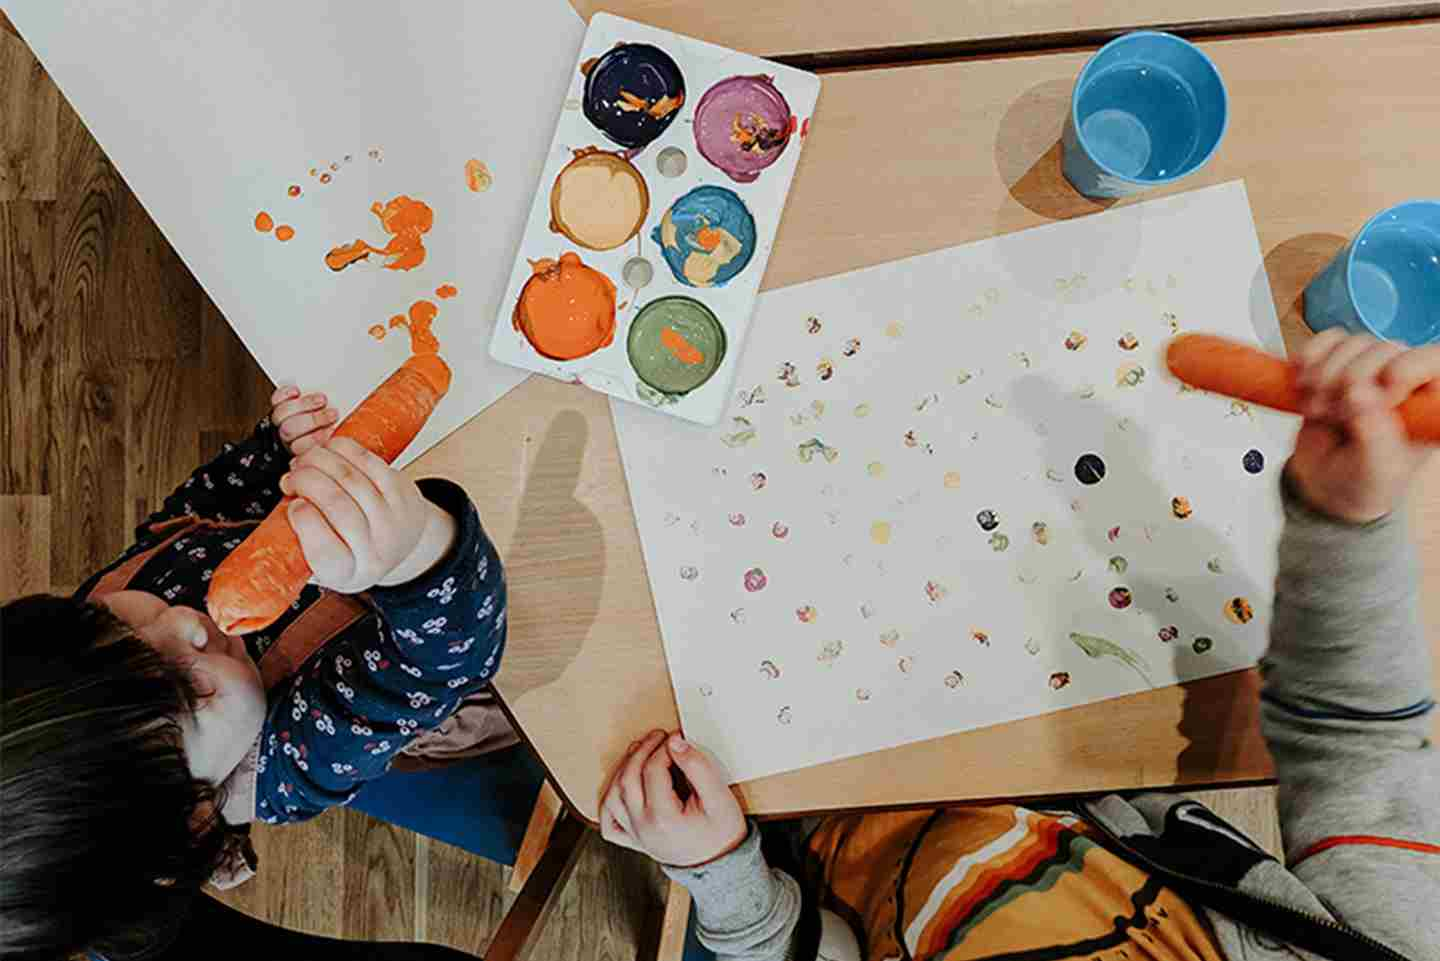 Children-painting-in-Kid's-Zone.jpg